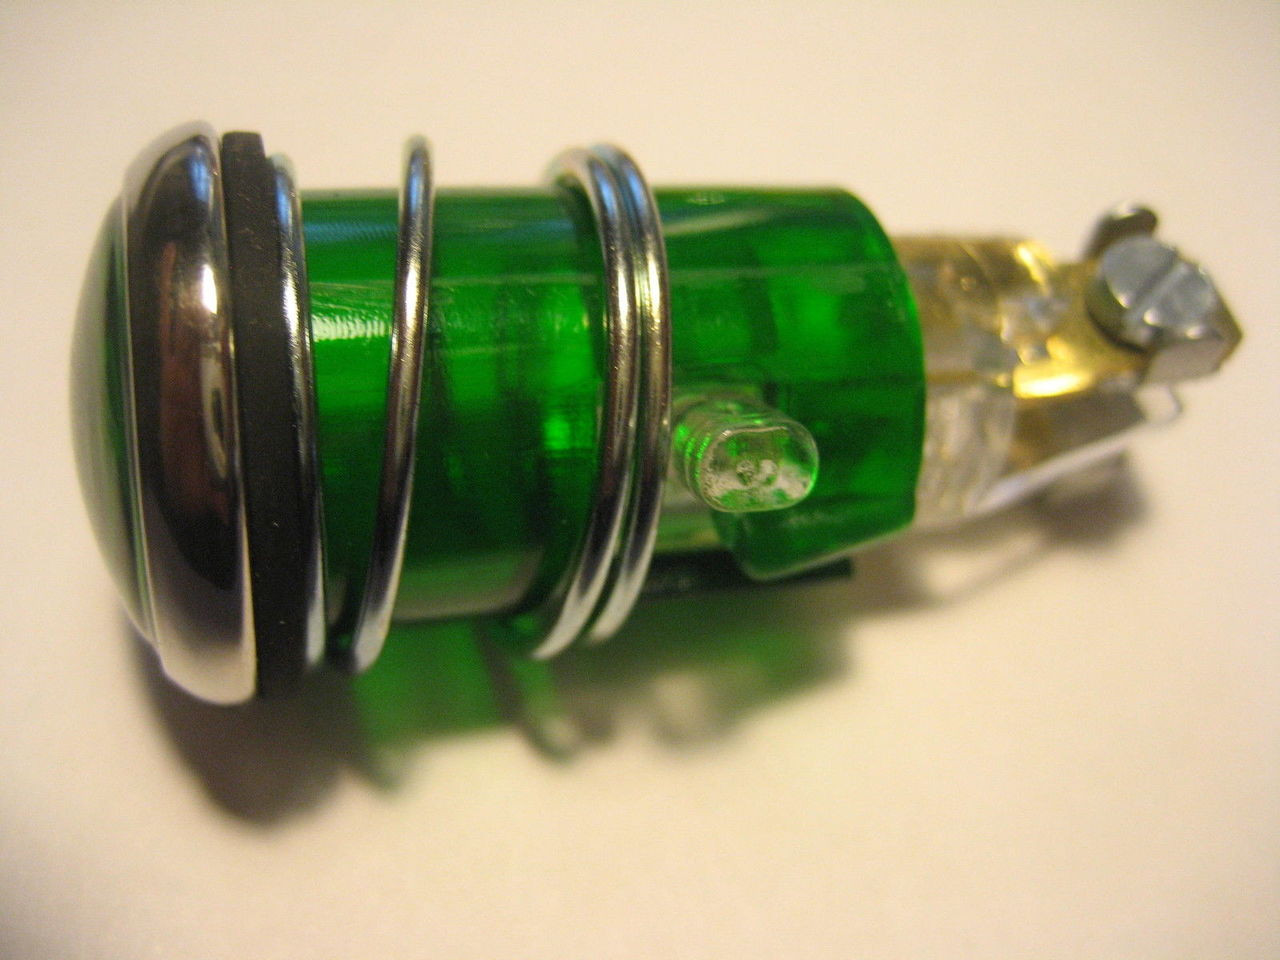 NEW VINTAGE BMW GREEN INDICATOR LIGHT FOR HEADLIGHT FITS MANY MODELS - 63 12 1 353 487